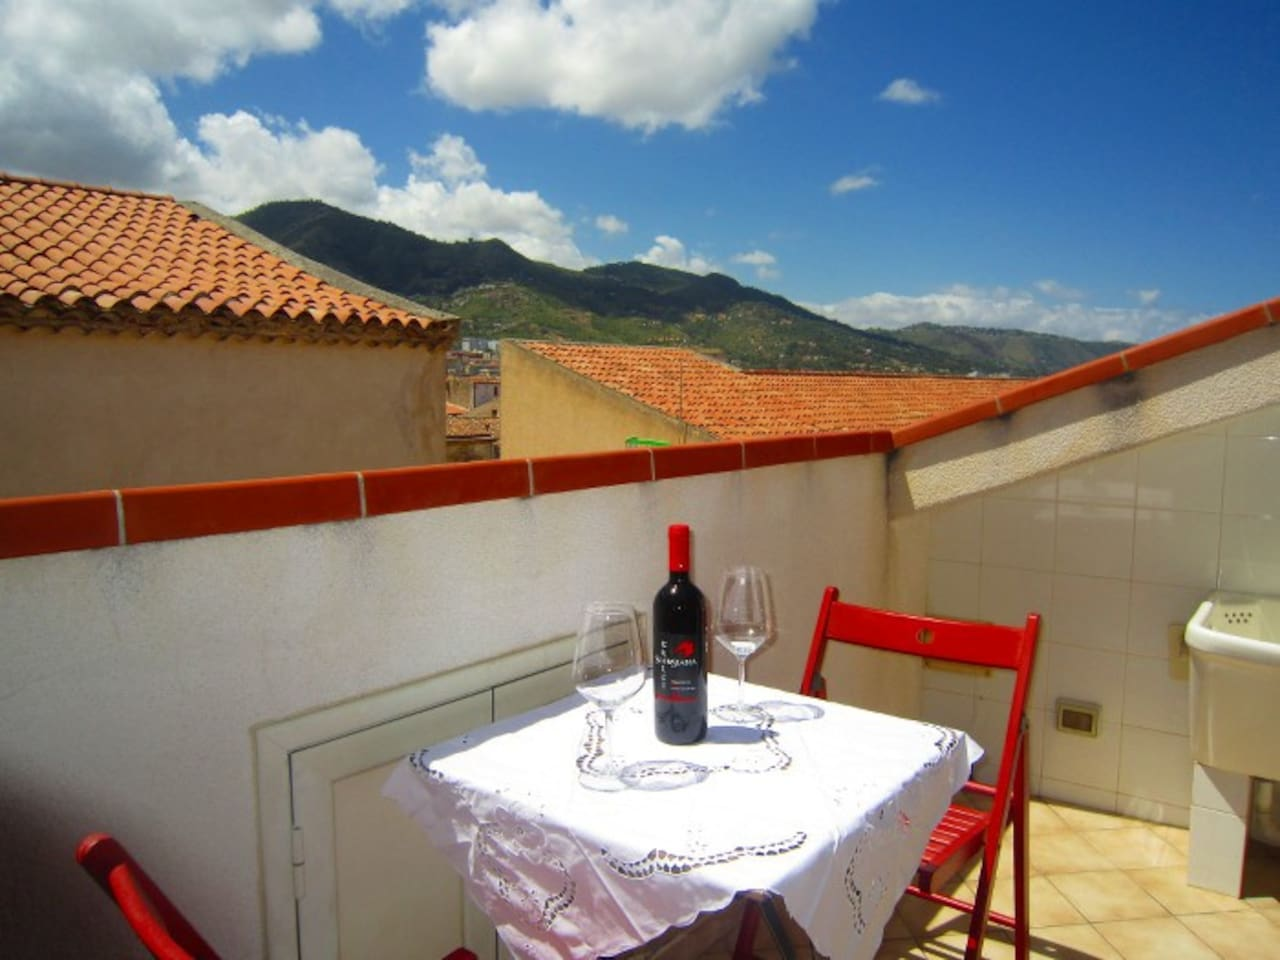 Balcony on the upper level where is possible to sit, have a dinner and drink a tasty glass of Sicilian wine